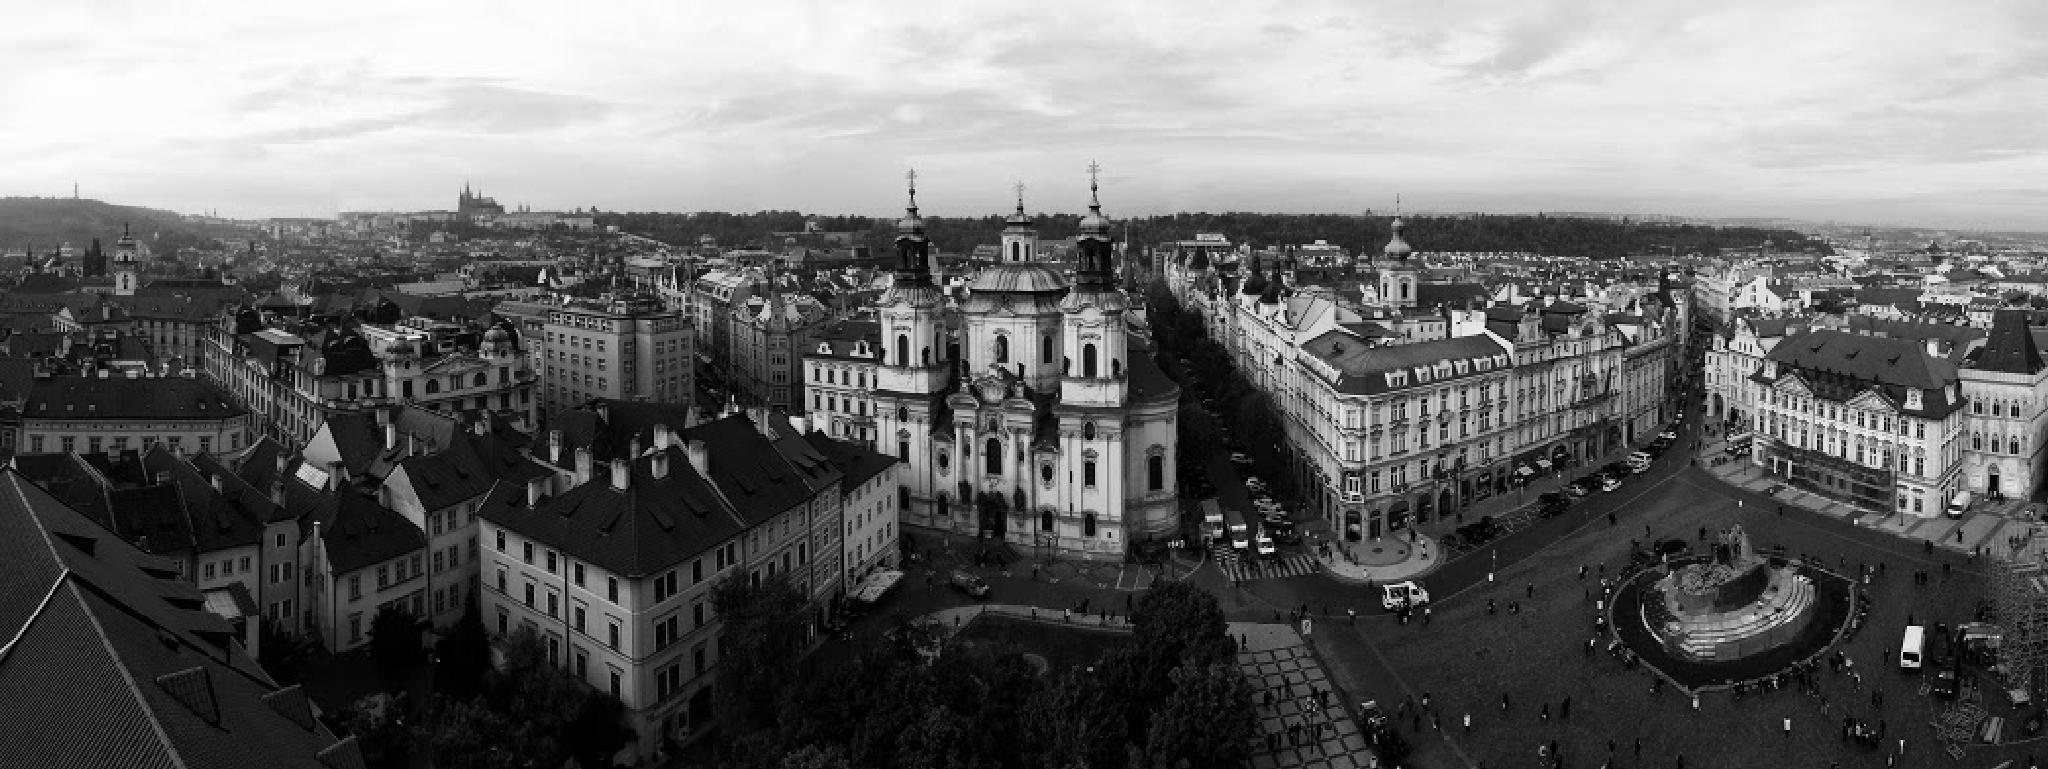 Prague Rooftops by lukejohnfrost